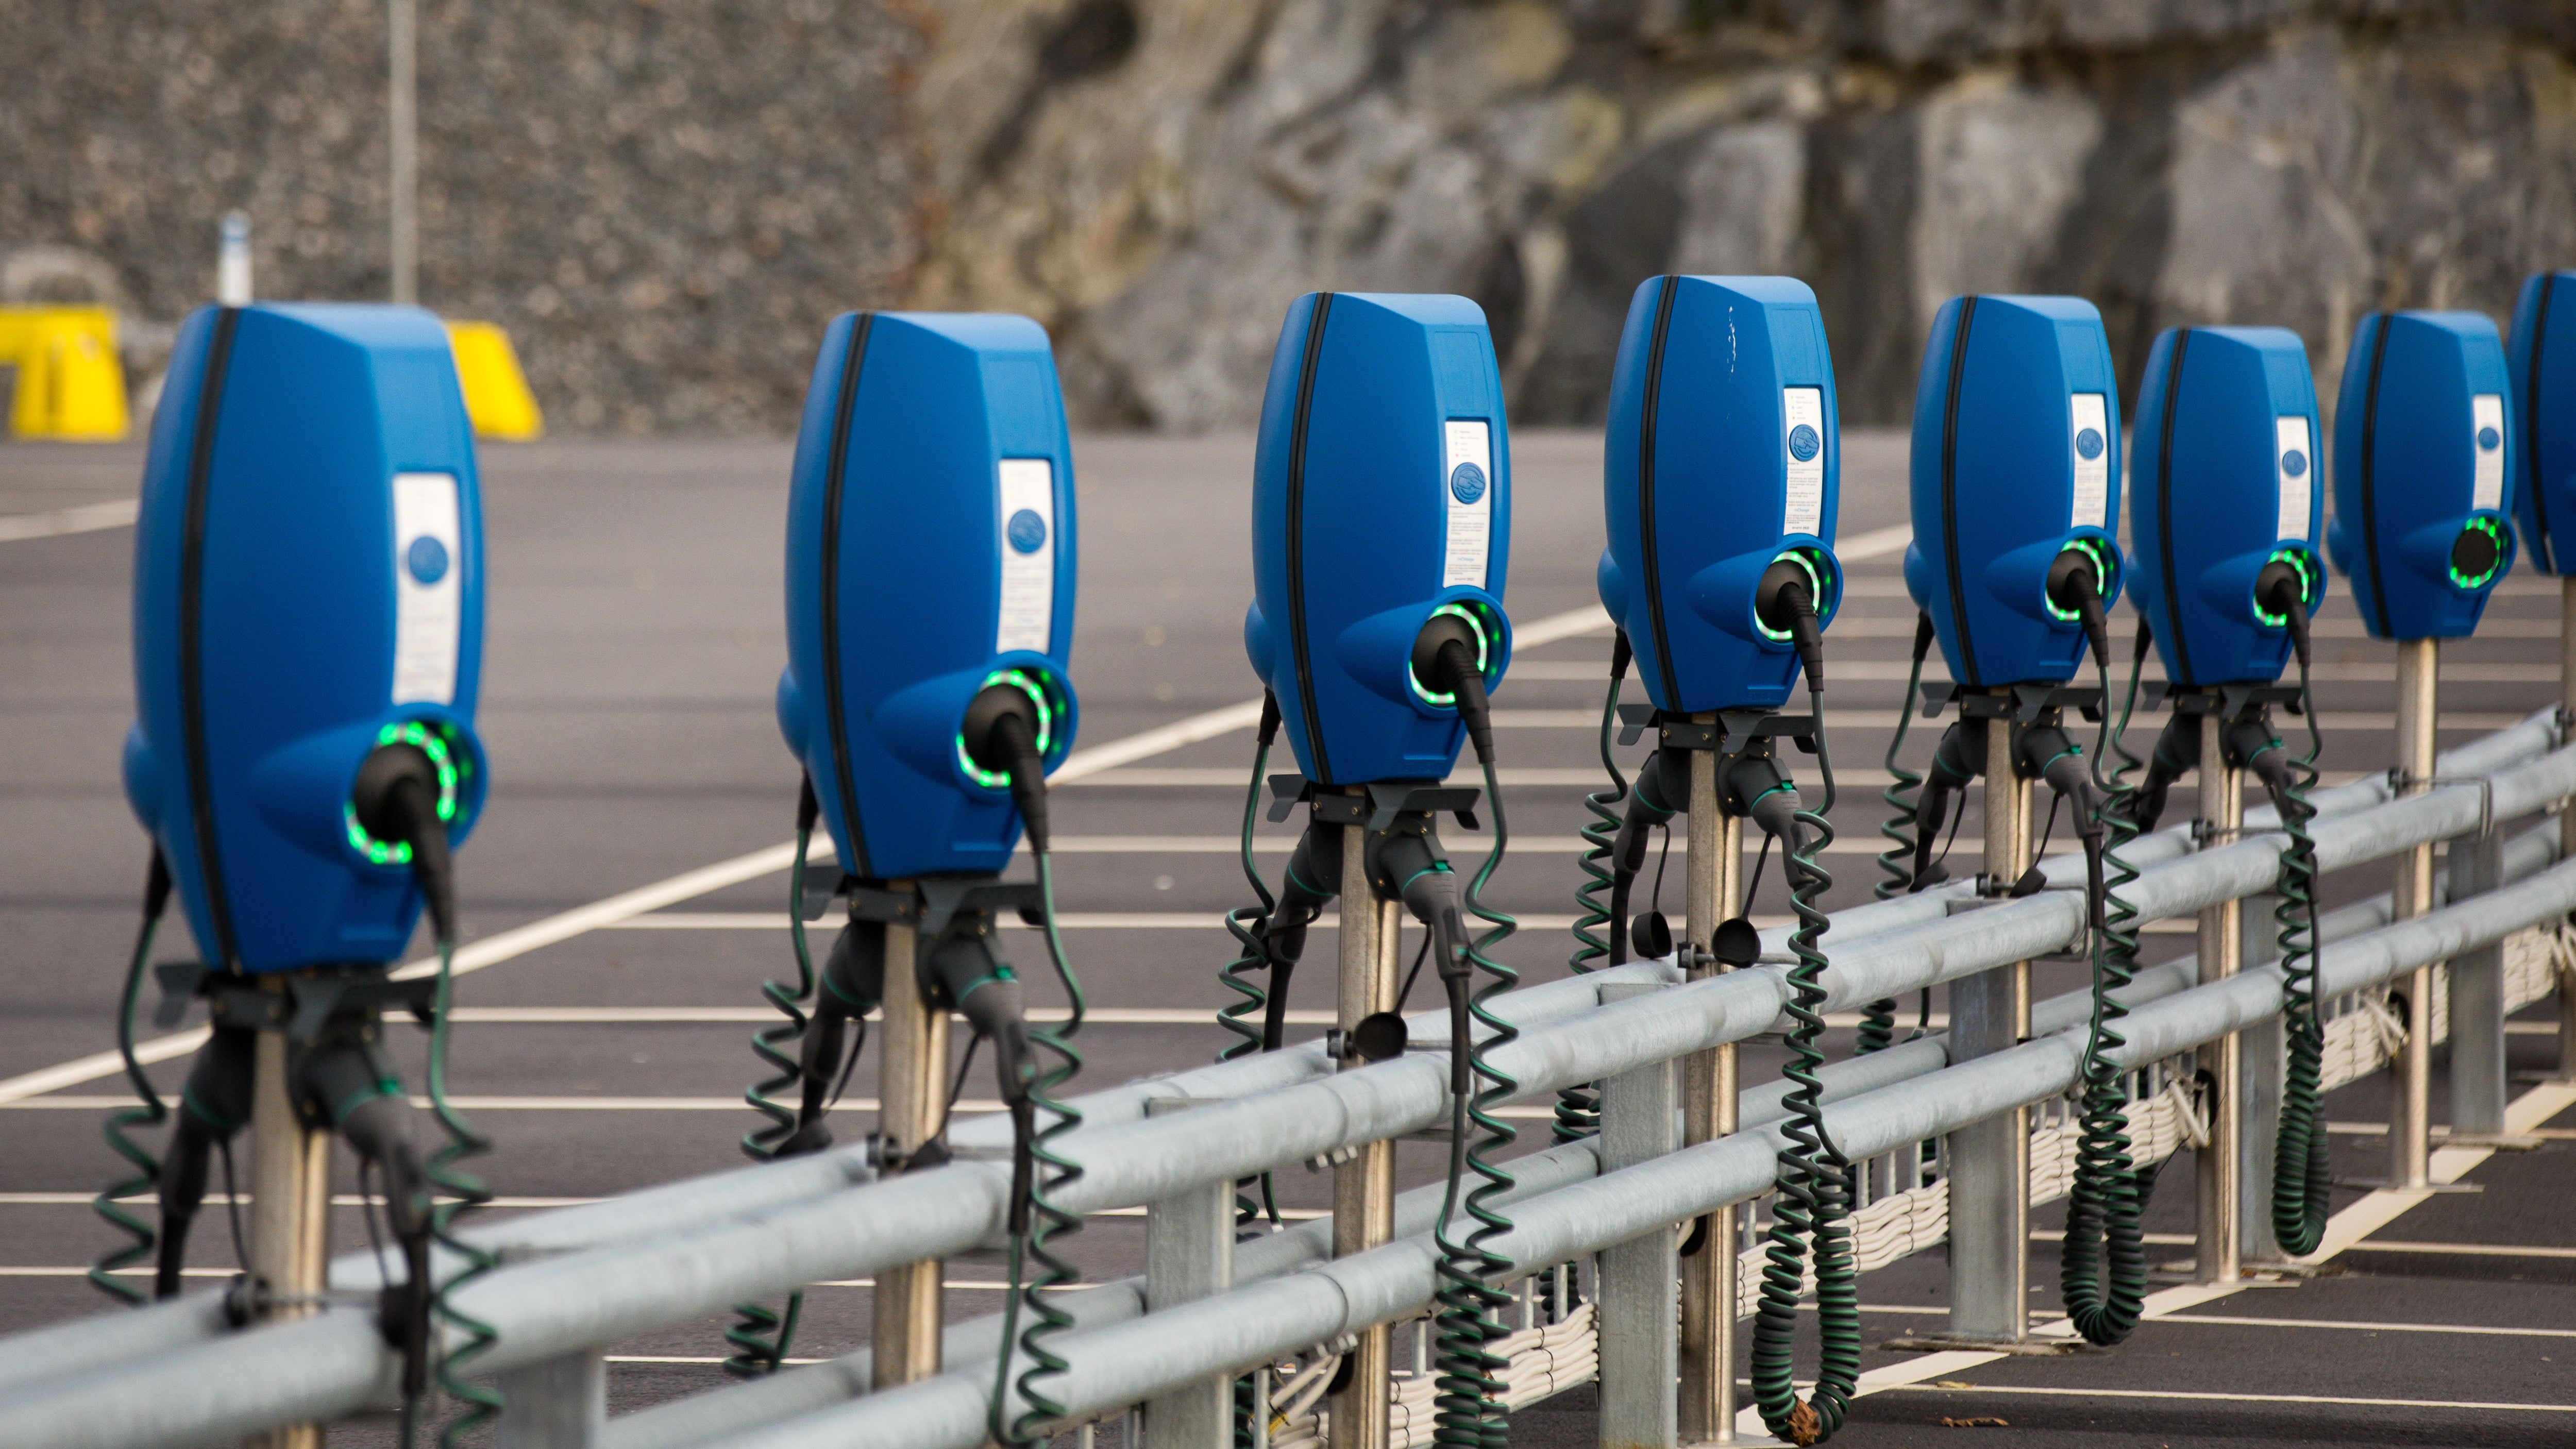 How To Find A Compatible Electric Car Charging Station Using Google Maps